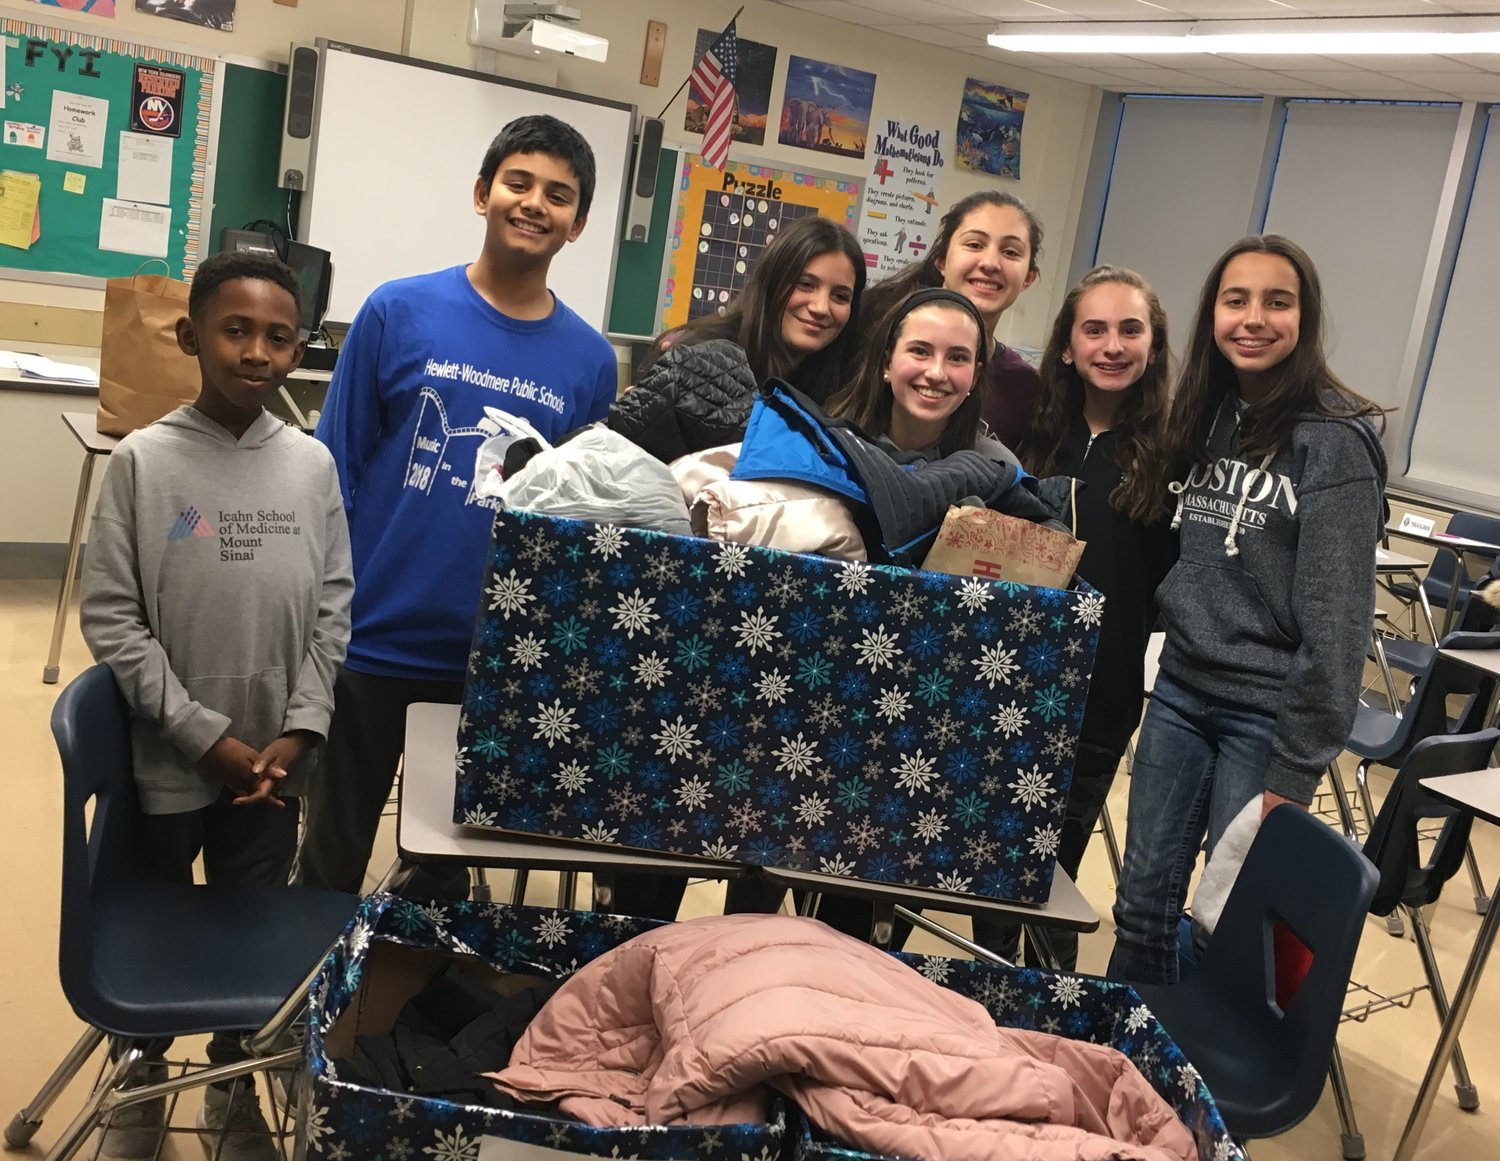 The Kiwanis Builders Club is developing a successful track record of community service. From left Julian Valme, Ibrahim Rasheed, Isabella Diglio, Skylar Kampton, Anastasia Inglima, Leah Bragin and Elani Rocha.